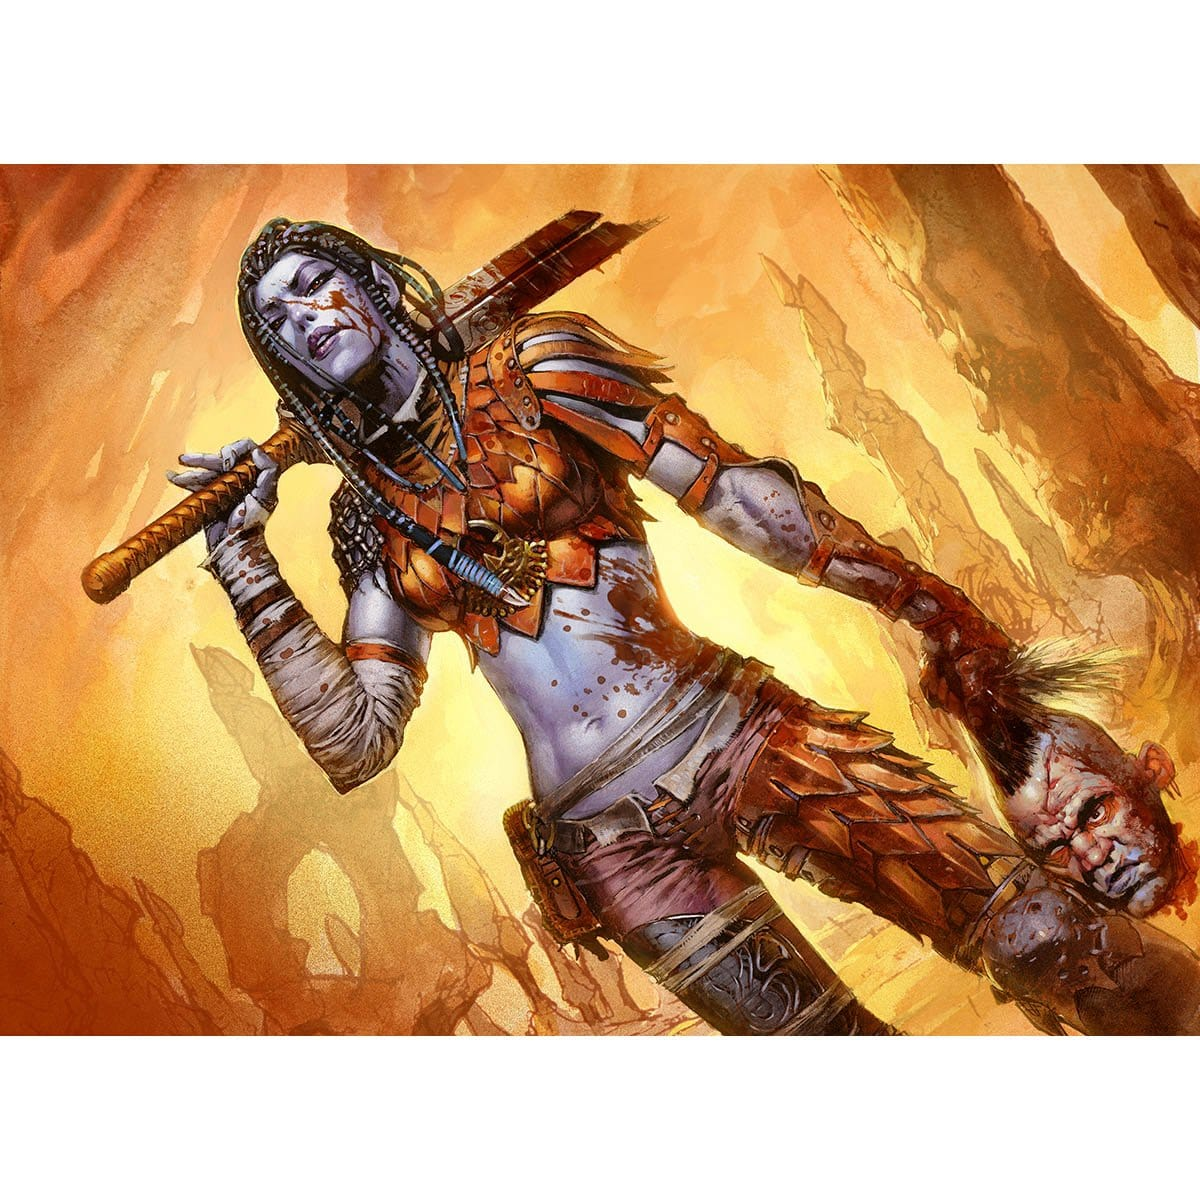 Radha, Heir to Keld Print - Print - Original Magic Art - Accessories for Magic the Gathering and other card games